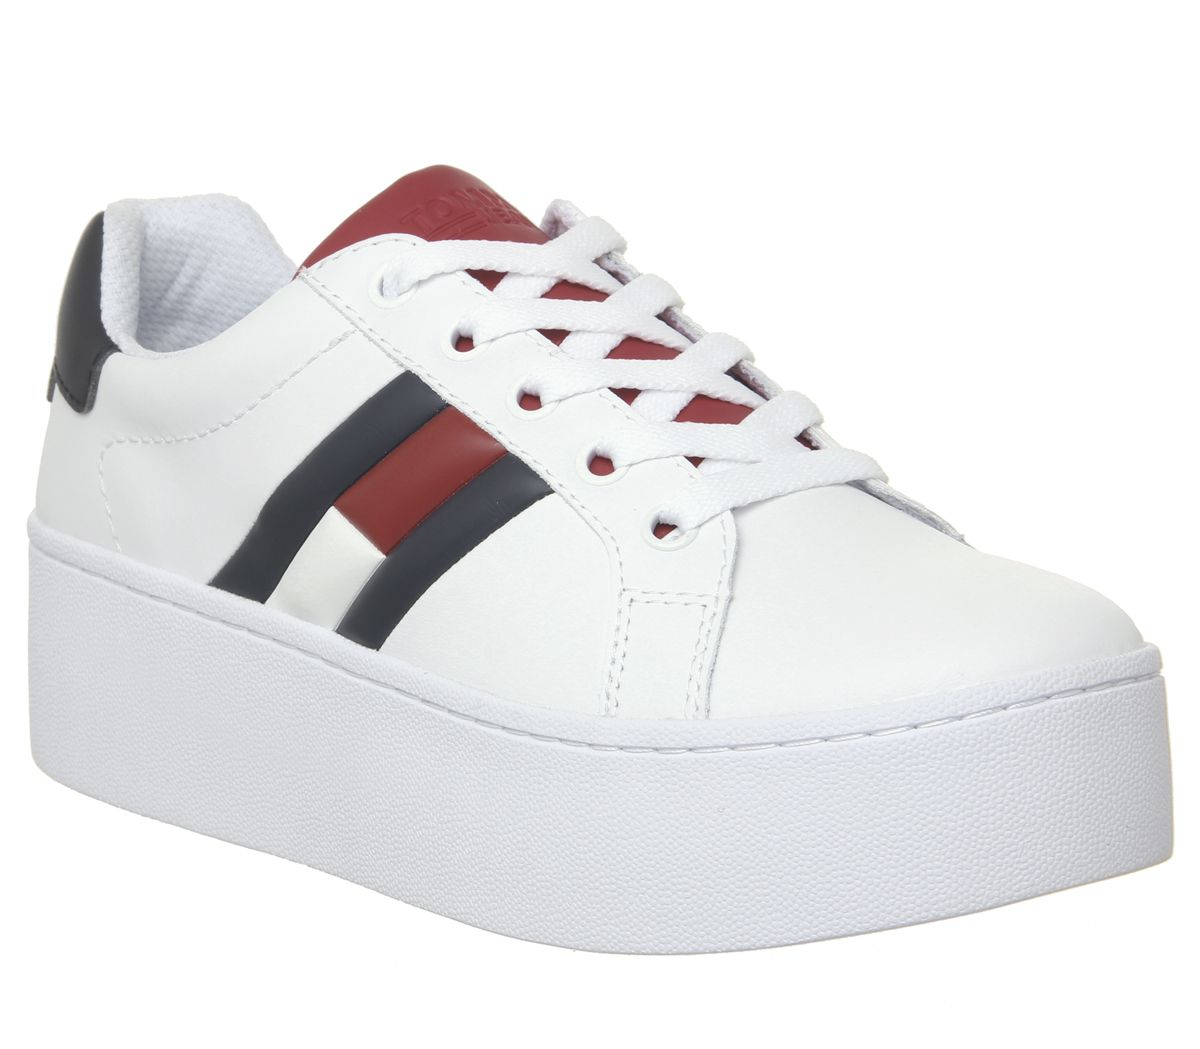 bd43137ee022 Tommy Hilfiger Flag Sneaker Platform Trainers White Red Blue - Hers ...